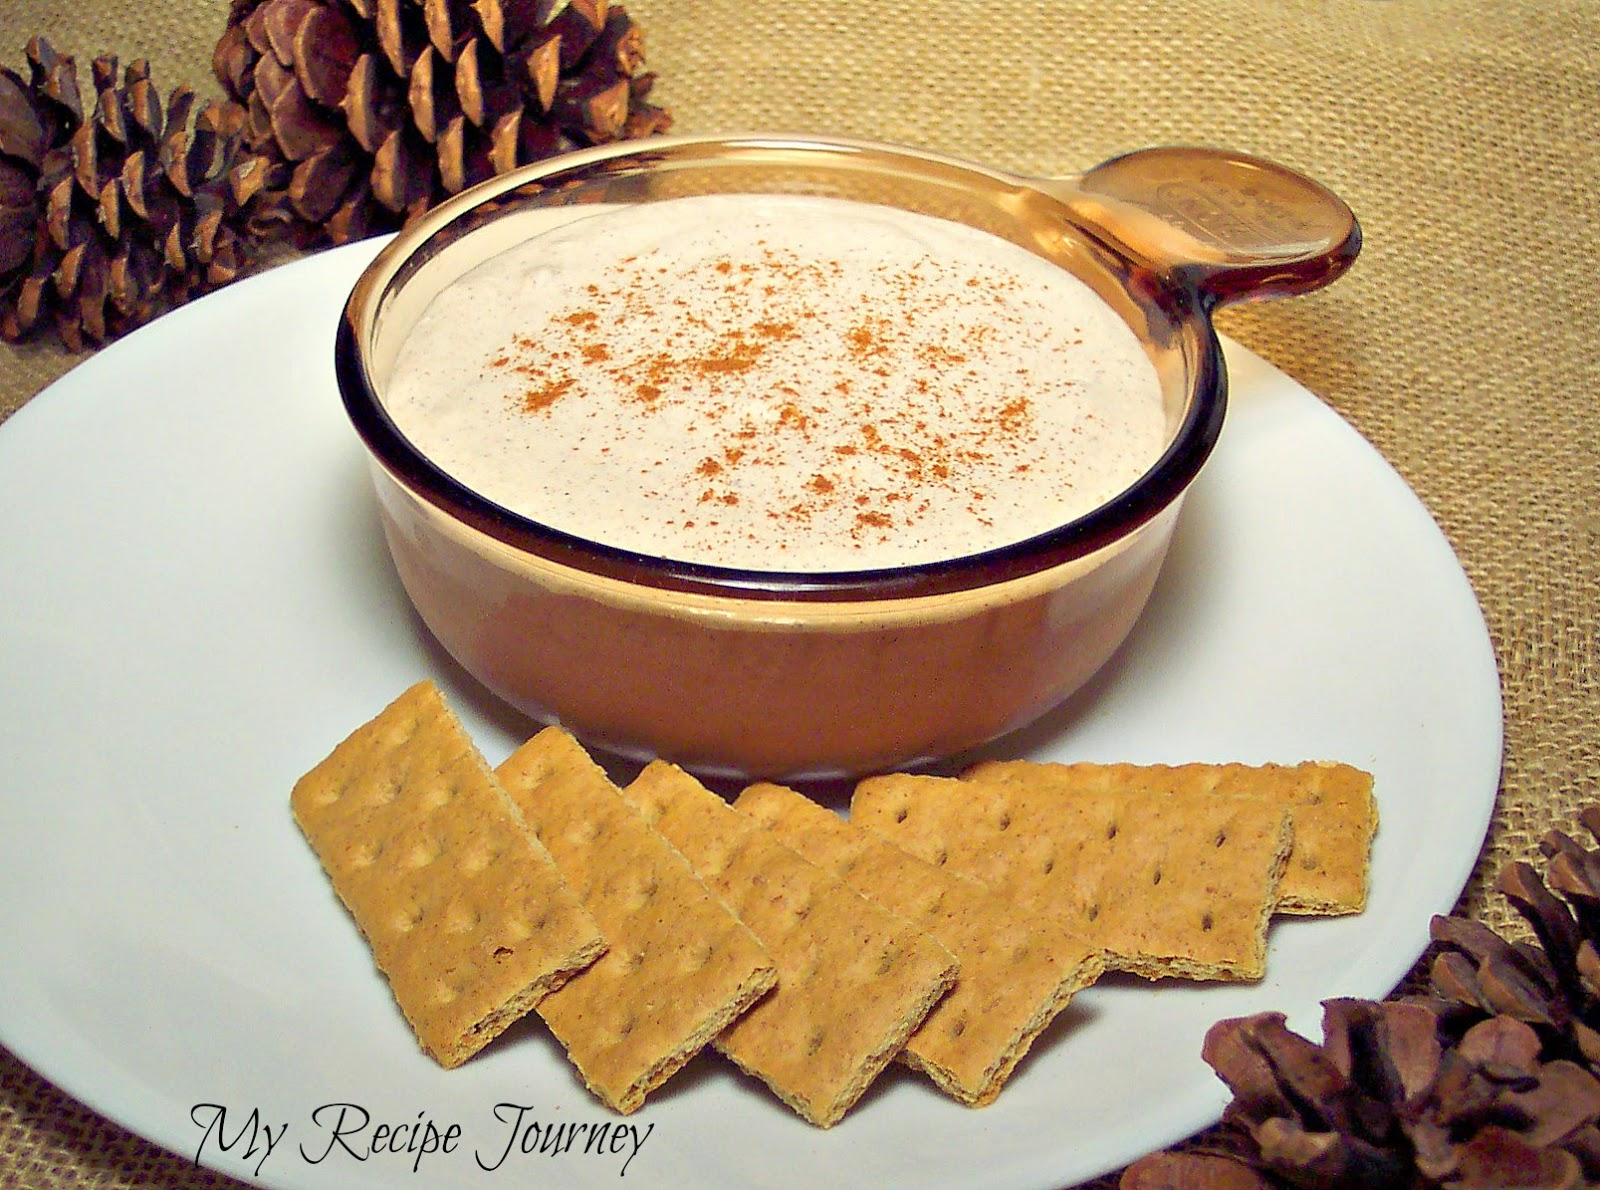 My Recipe Journey: Pumpkin Pie Dip